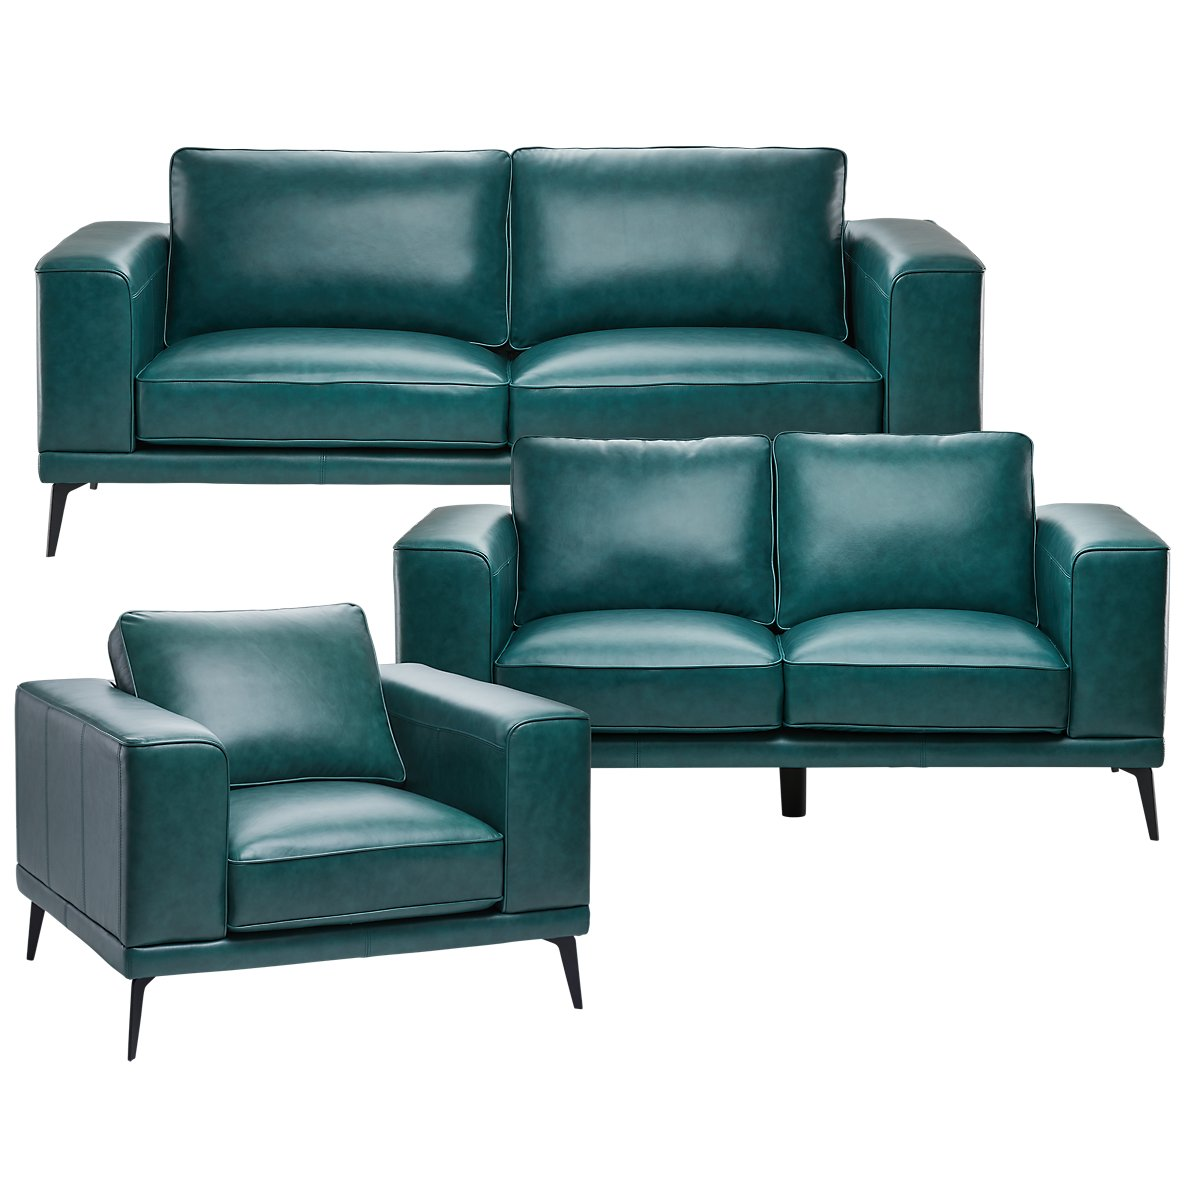 Naples Turquoise Leather Living Room With Black Legs